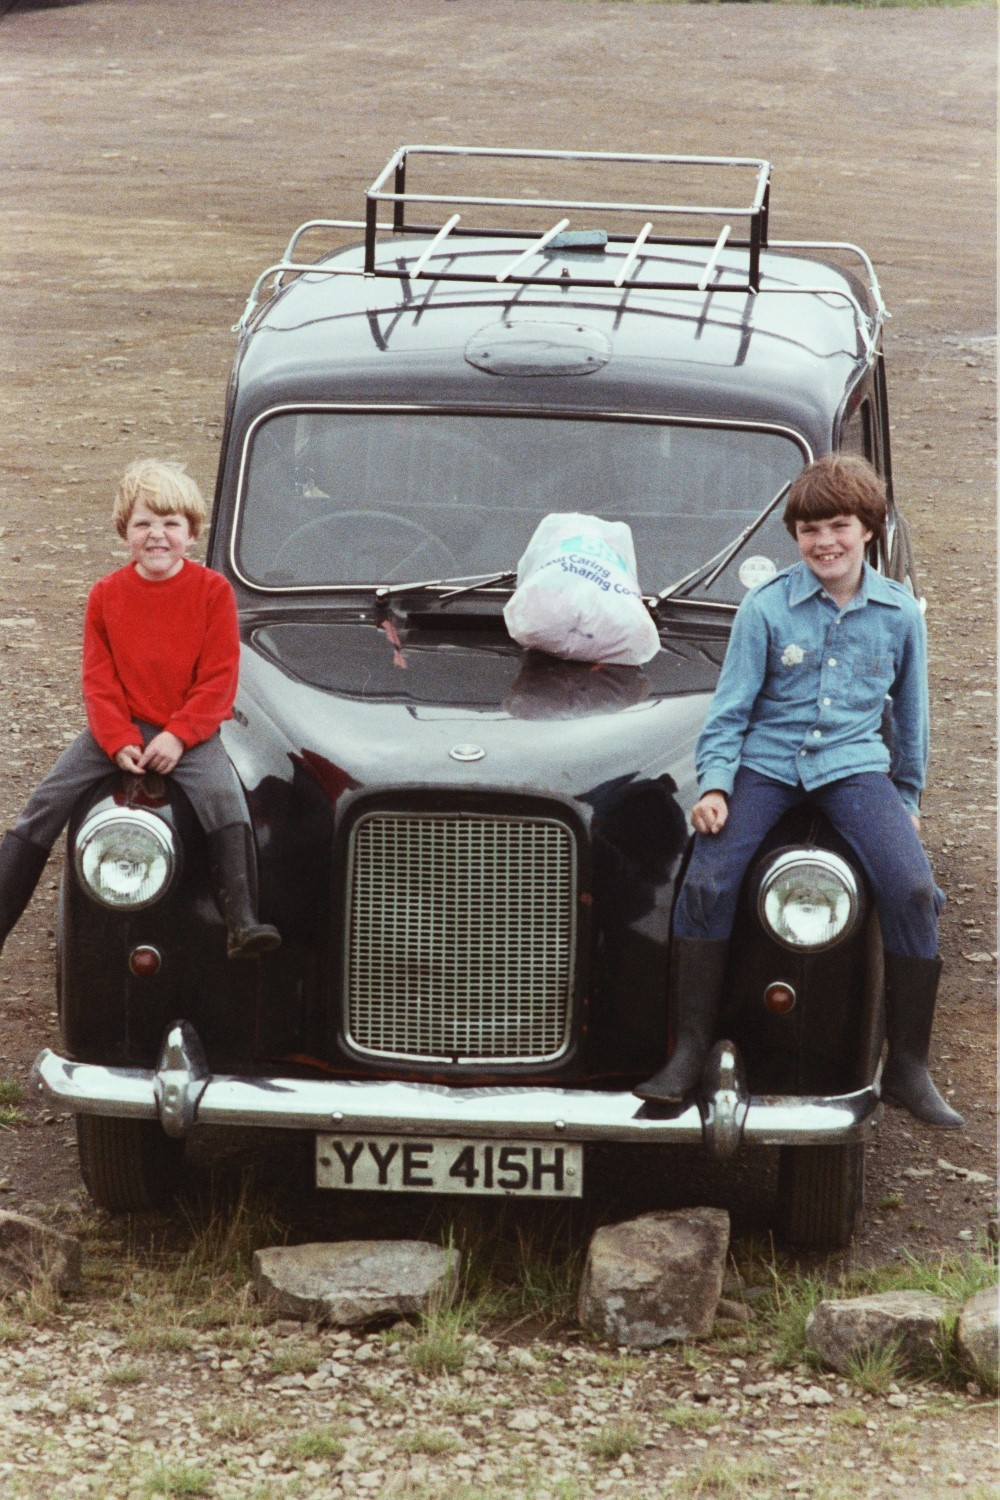 Russel and I on the old London Taxi which we had in the 1970s